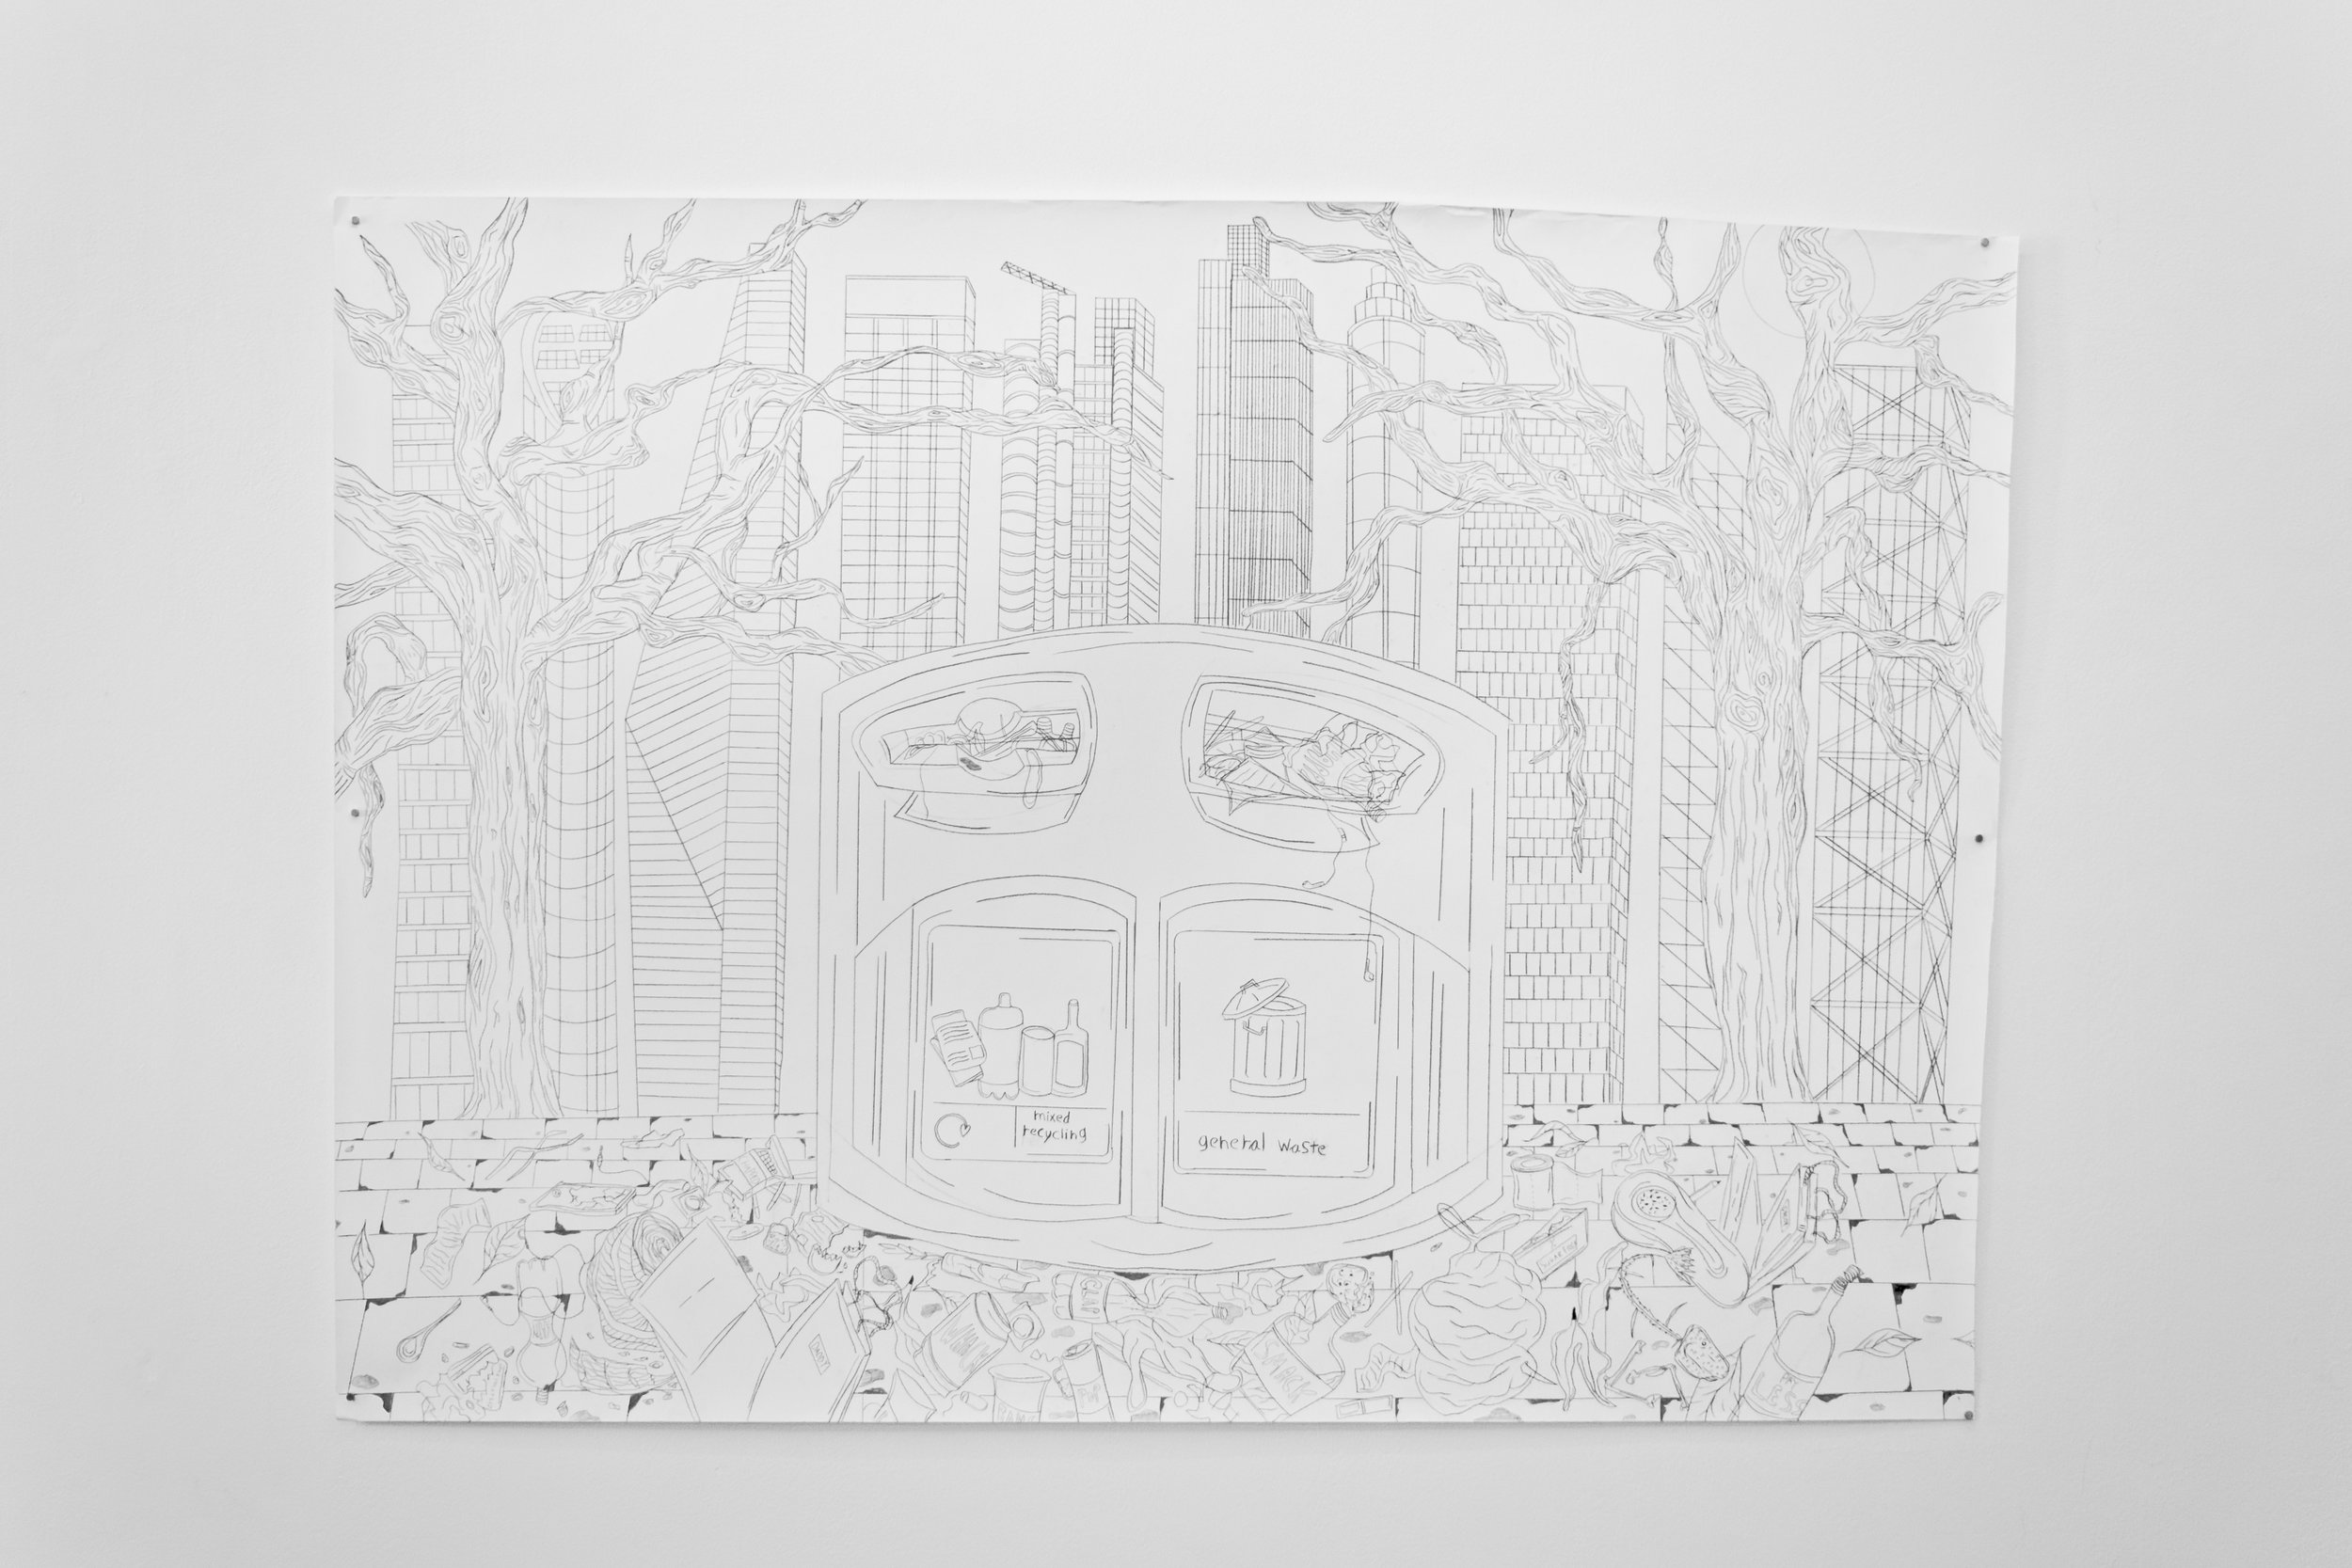 La Belle Vie , 2019 Graphite on paper 150 x 205 centimeters 59 x 80.5 inches